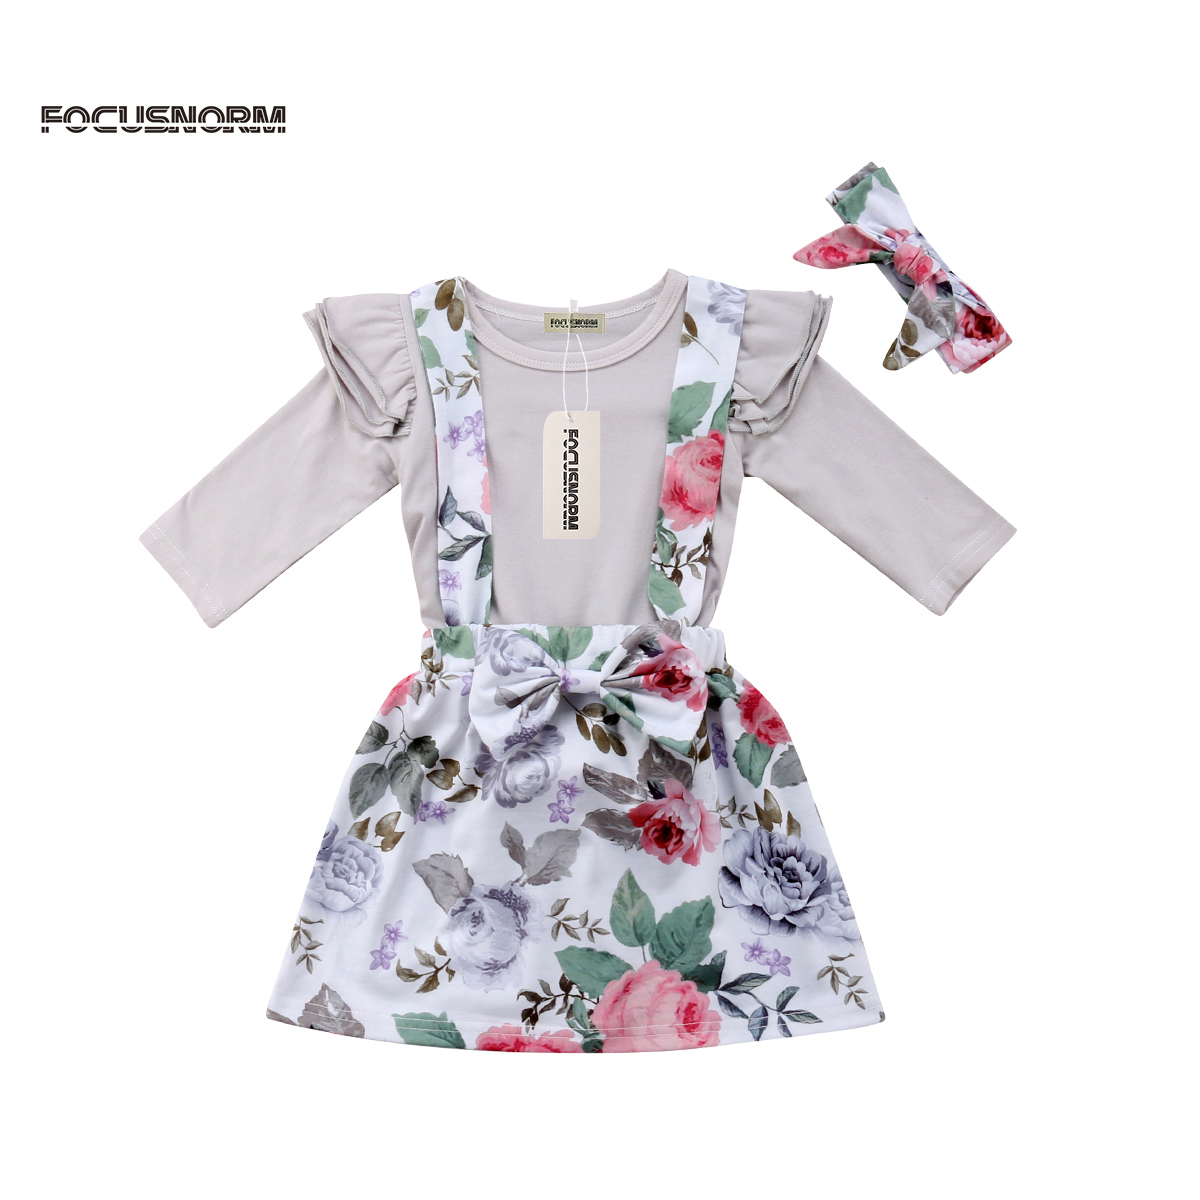 Newborn Kid Baby Girl Clothes Romper Bodysuit Jumpsuit Floral S kirt Outfits Set Bib Dress